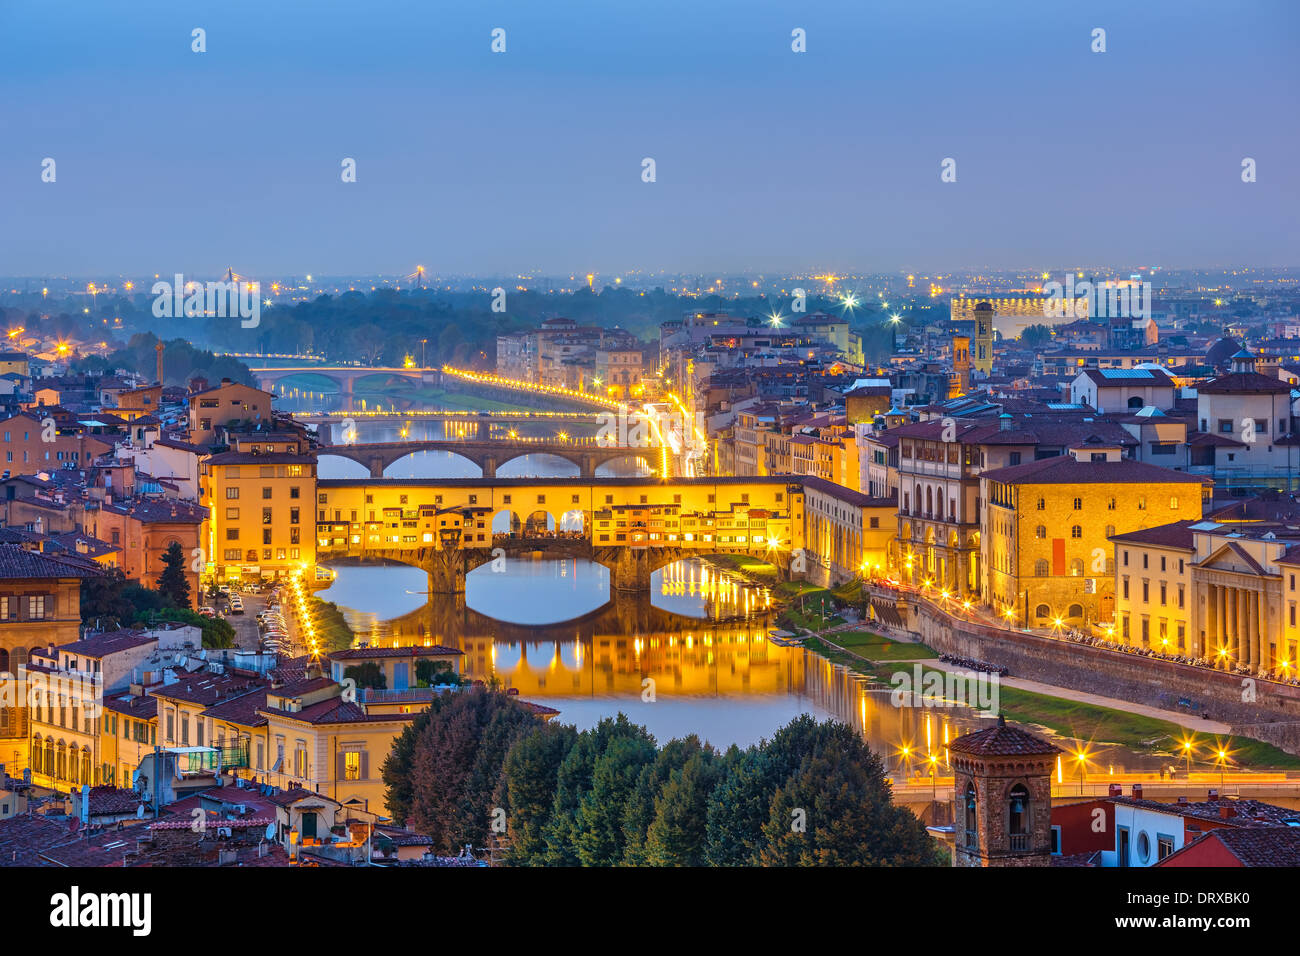 View on Arno river in Florence - Stock Image